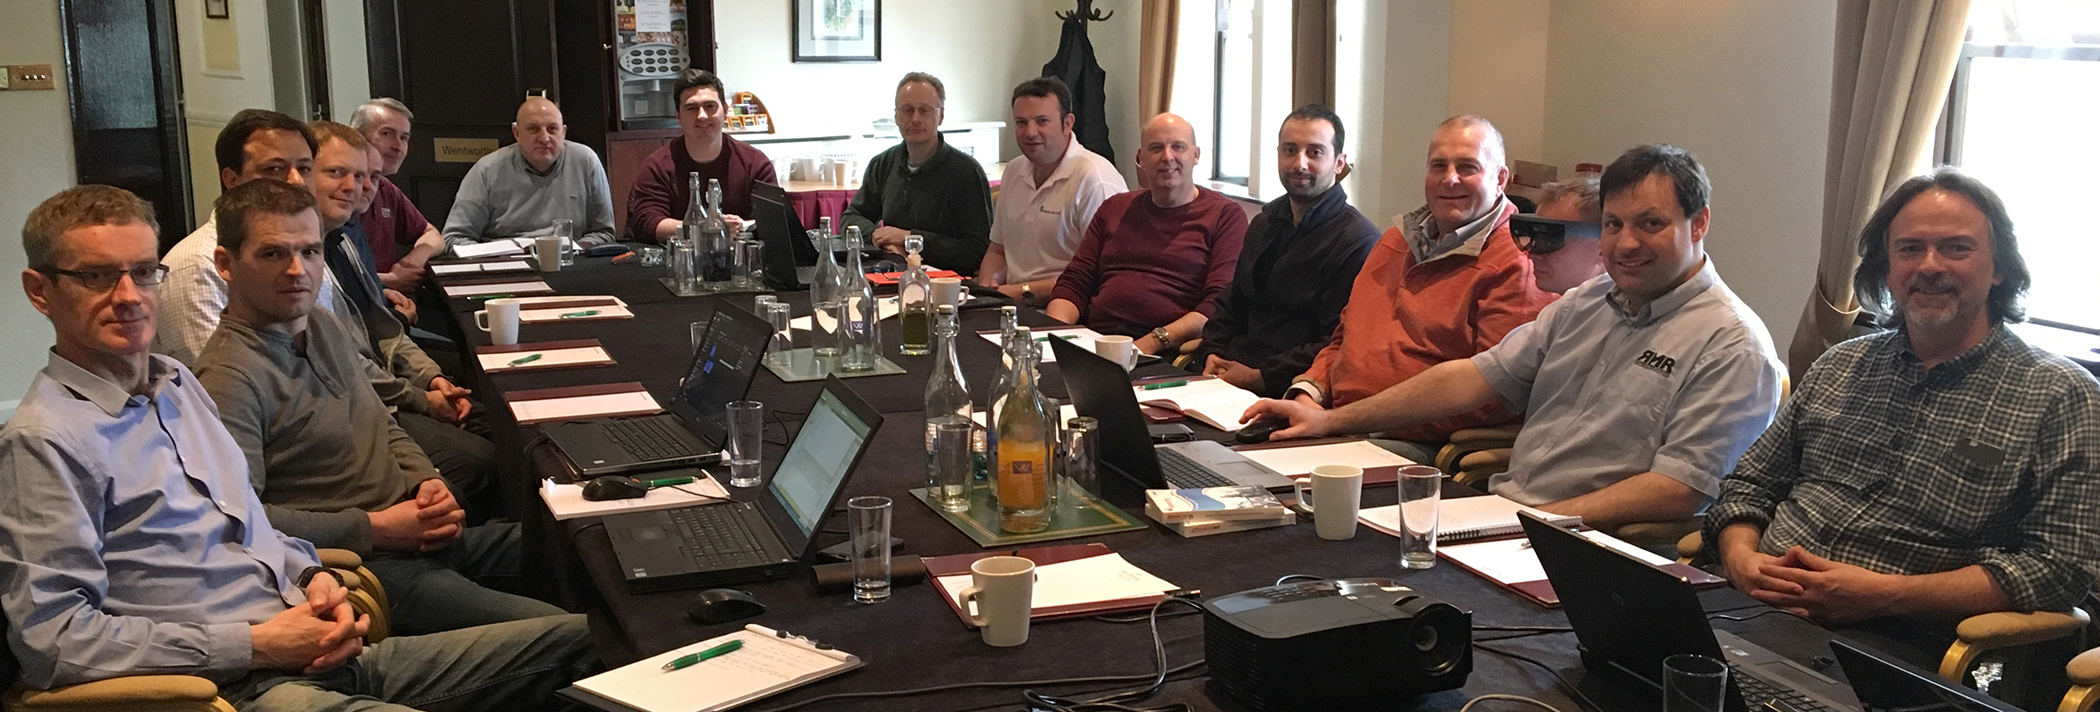 P4A seminar sees latest SCADA development embraced by potential users